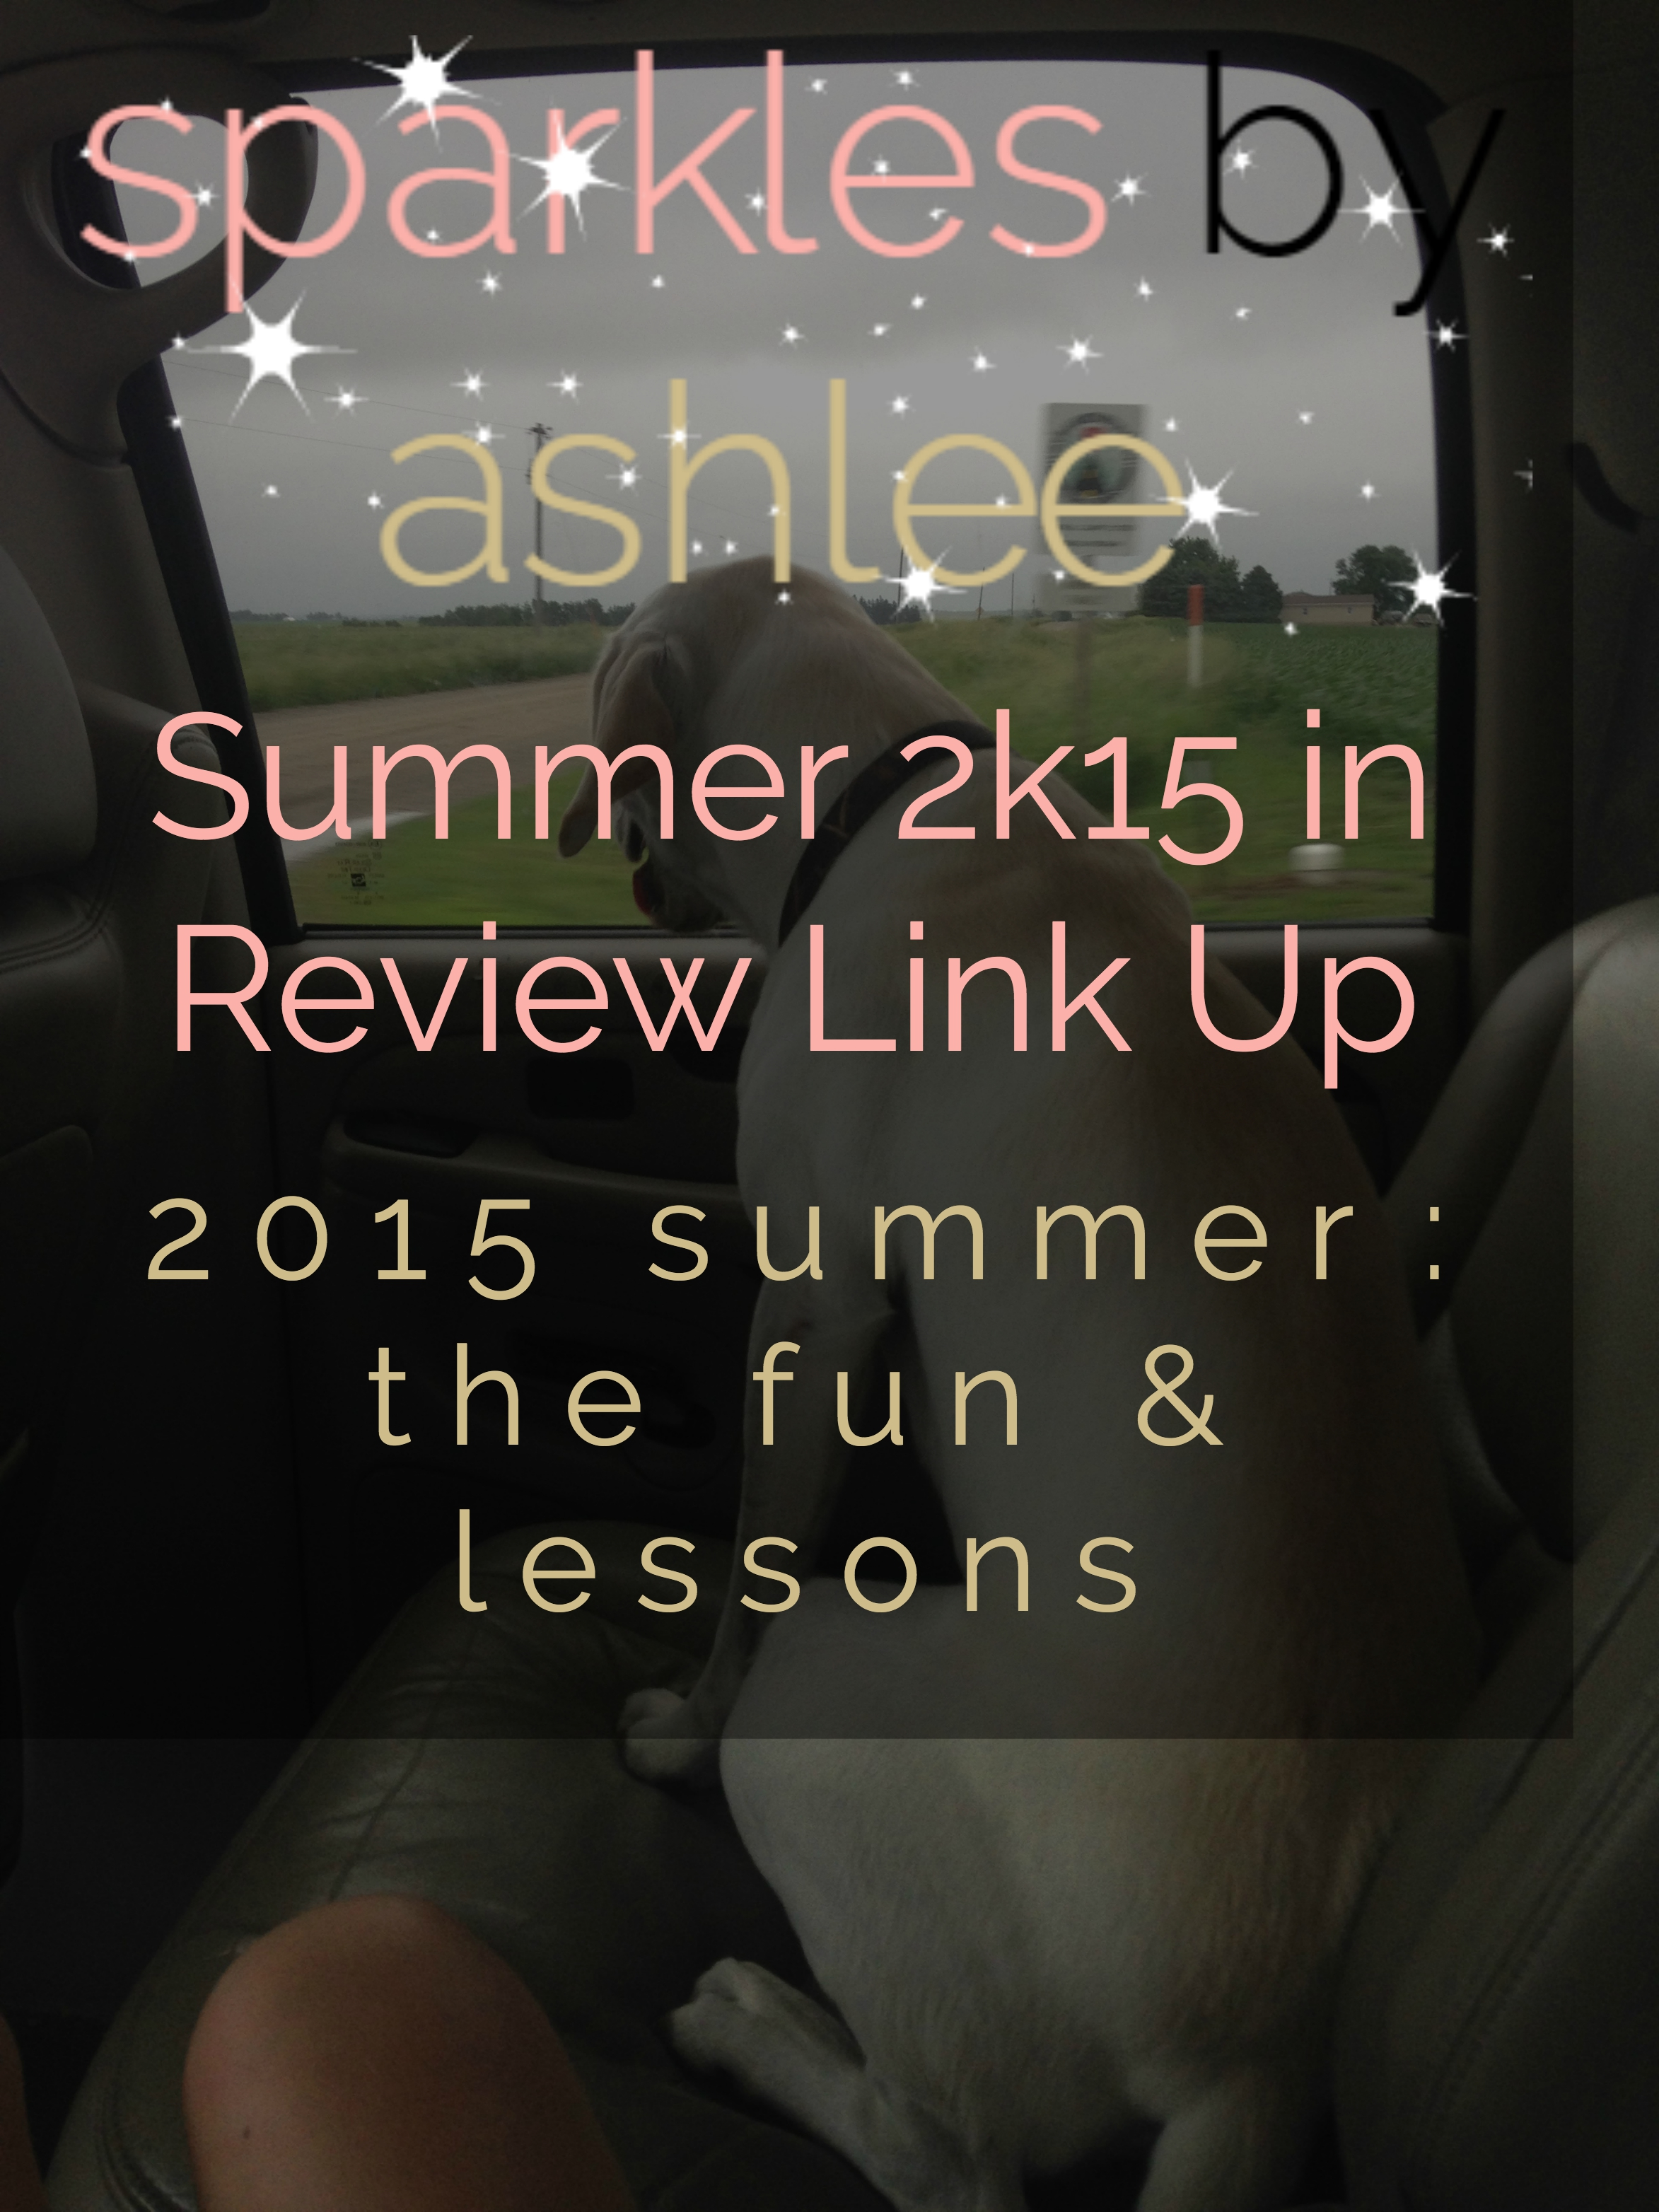 Summer-2k15-in-Review-Link-Up-Sparkles-by-Ashlee.jpg